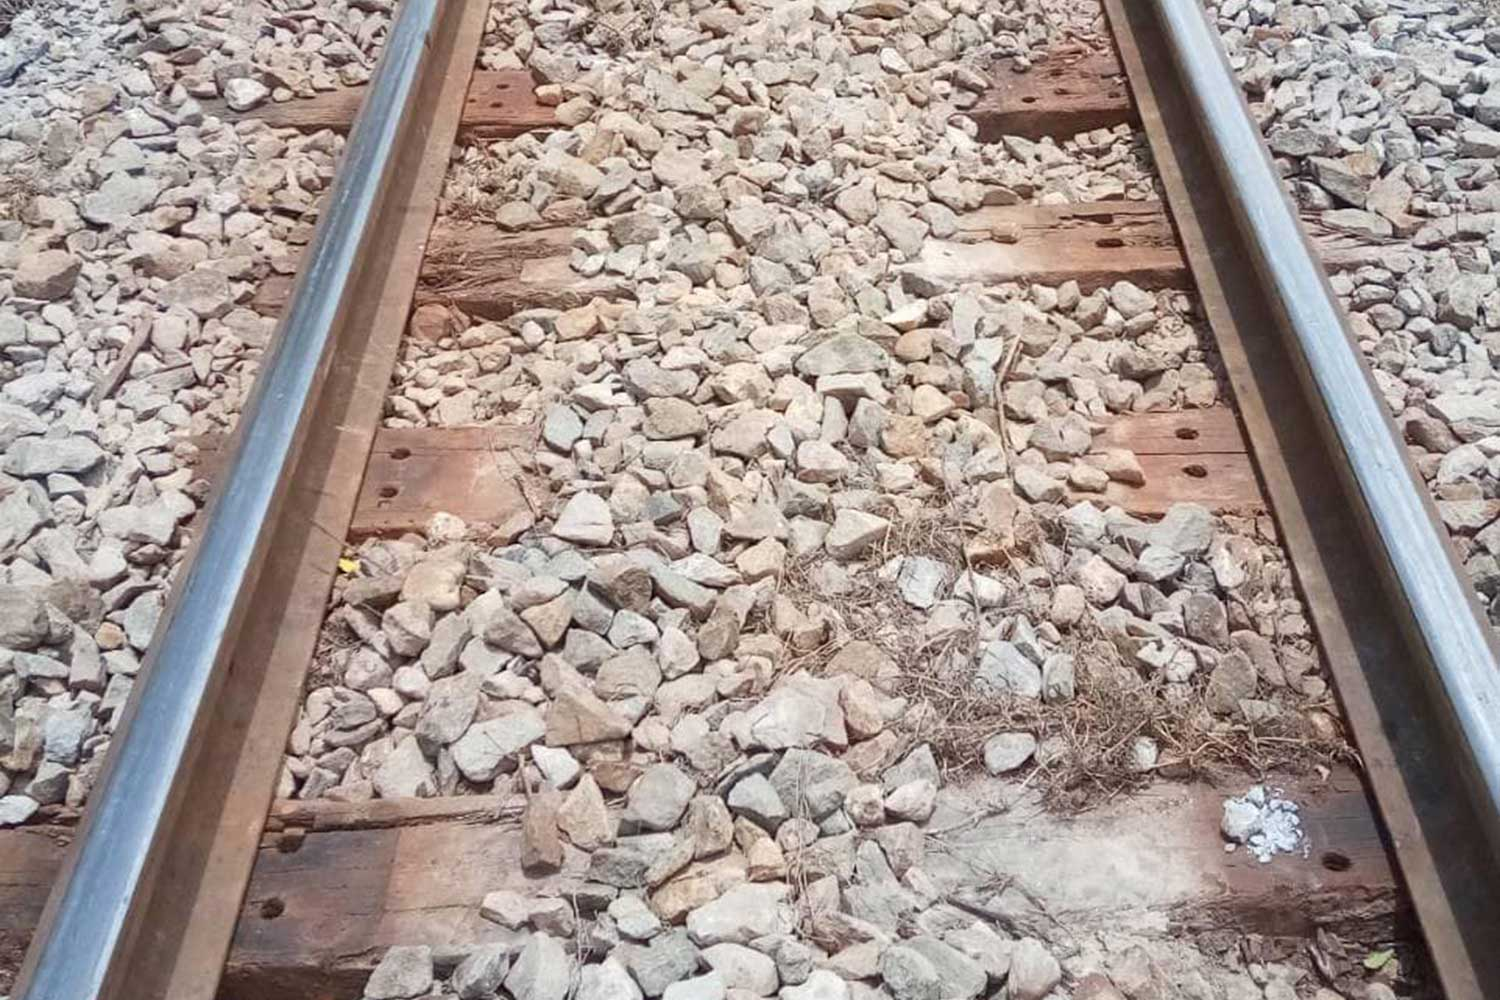 The fastening screws and base plates used to hold the tracks on the sleepers are missing on this section of track near Monday's derailment in Cha-am district, Phetchaburi. (Photo taken from @pr.railway Facebook page)